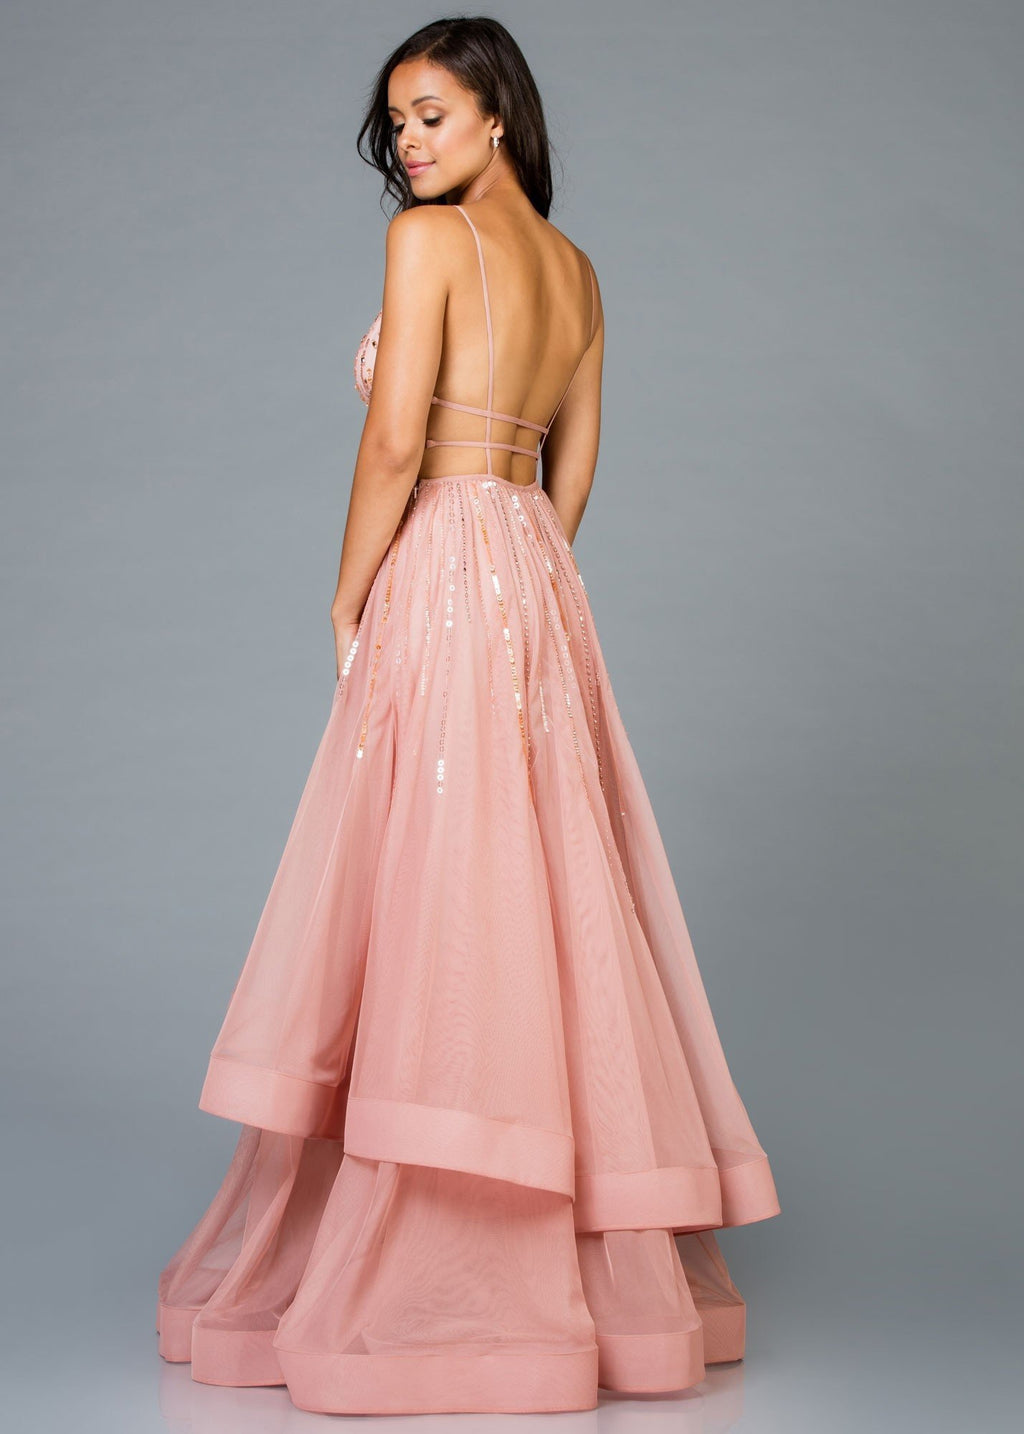 SCALA 48947 Tiered Evening Dress - CYC Boutique